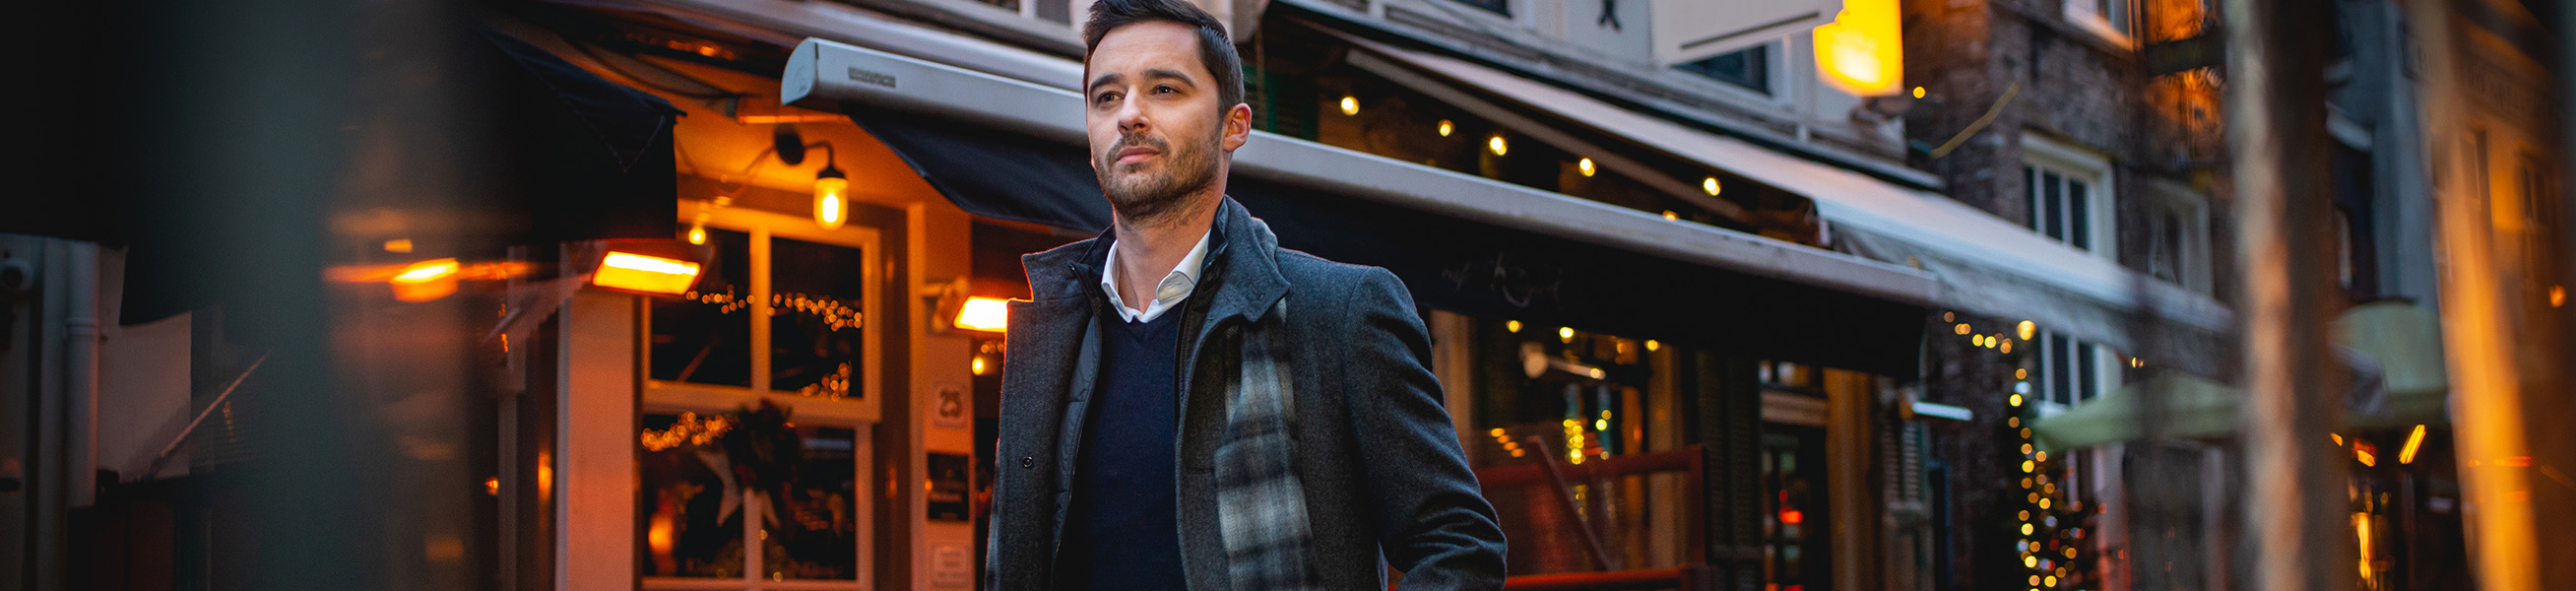 Men\'s scarfs at Suitable ✔ Different colours and fits ✔ Brands like Suitable Private Label, Profuomo and more ✔ Shop onlines